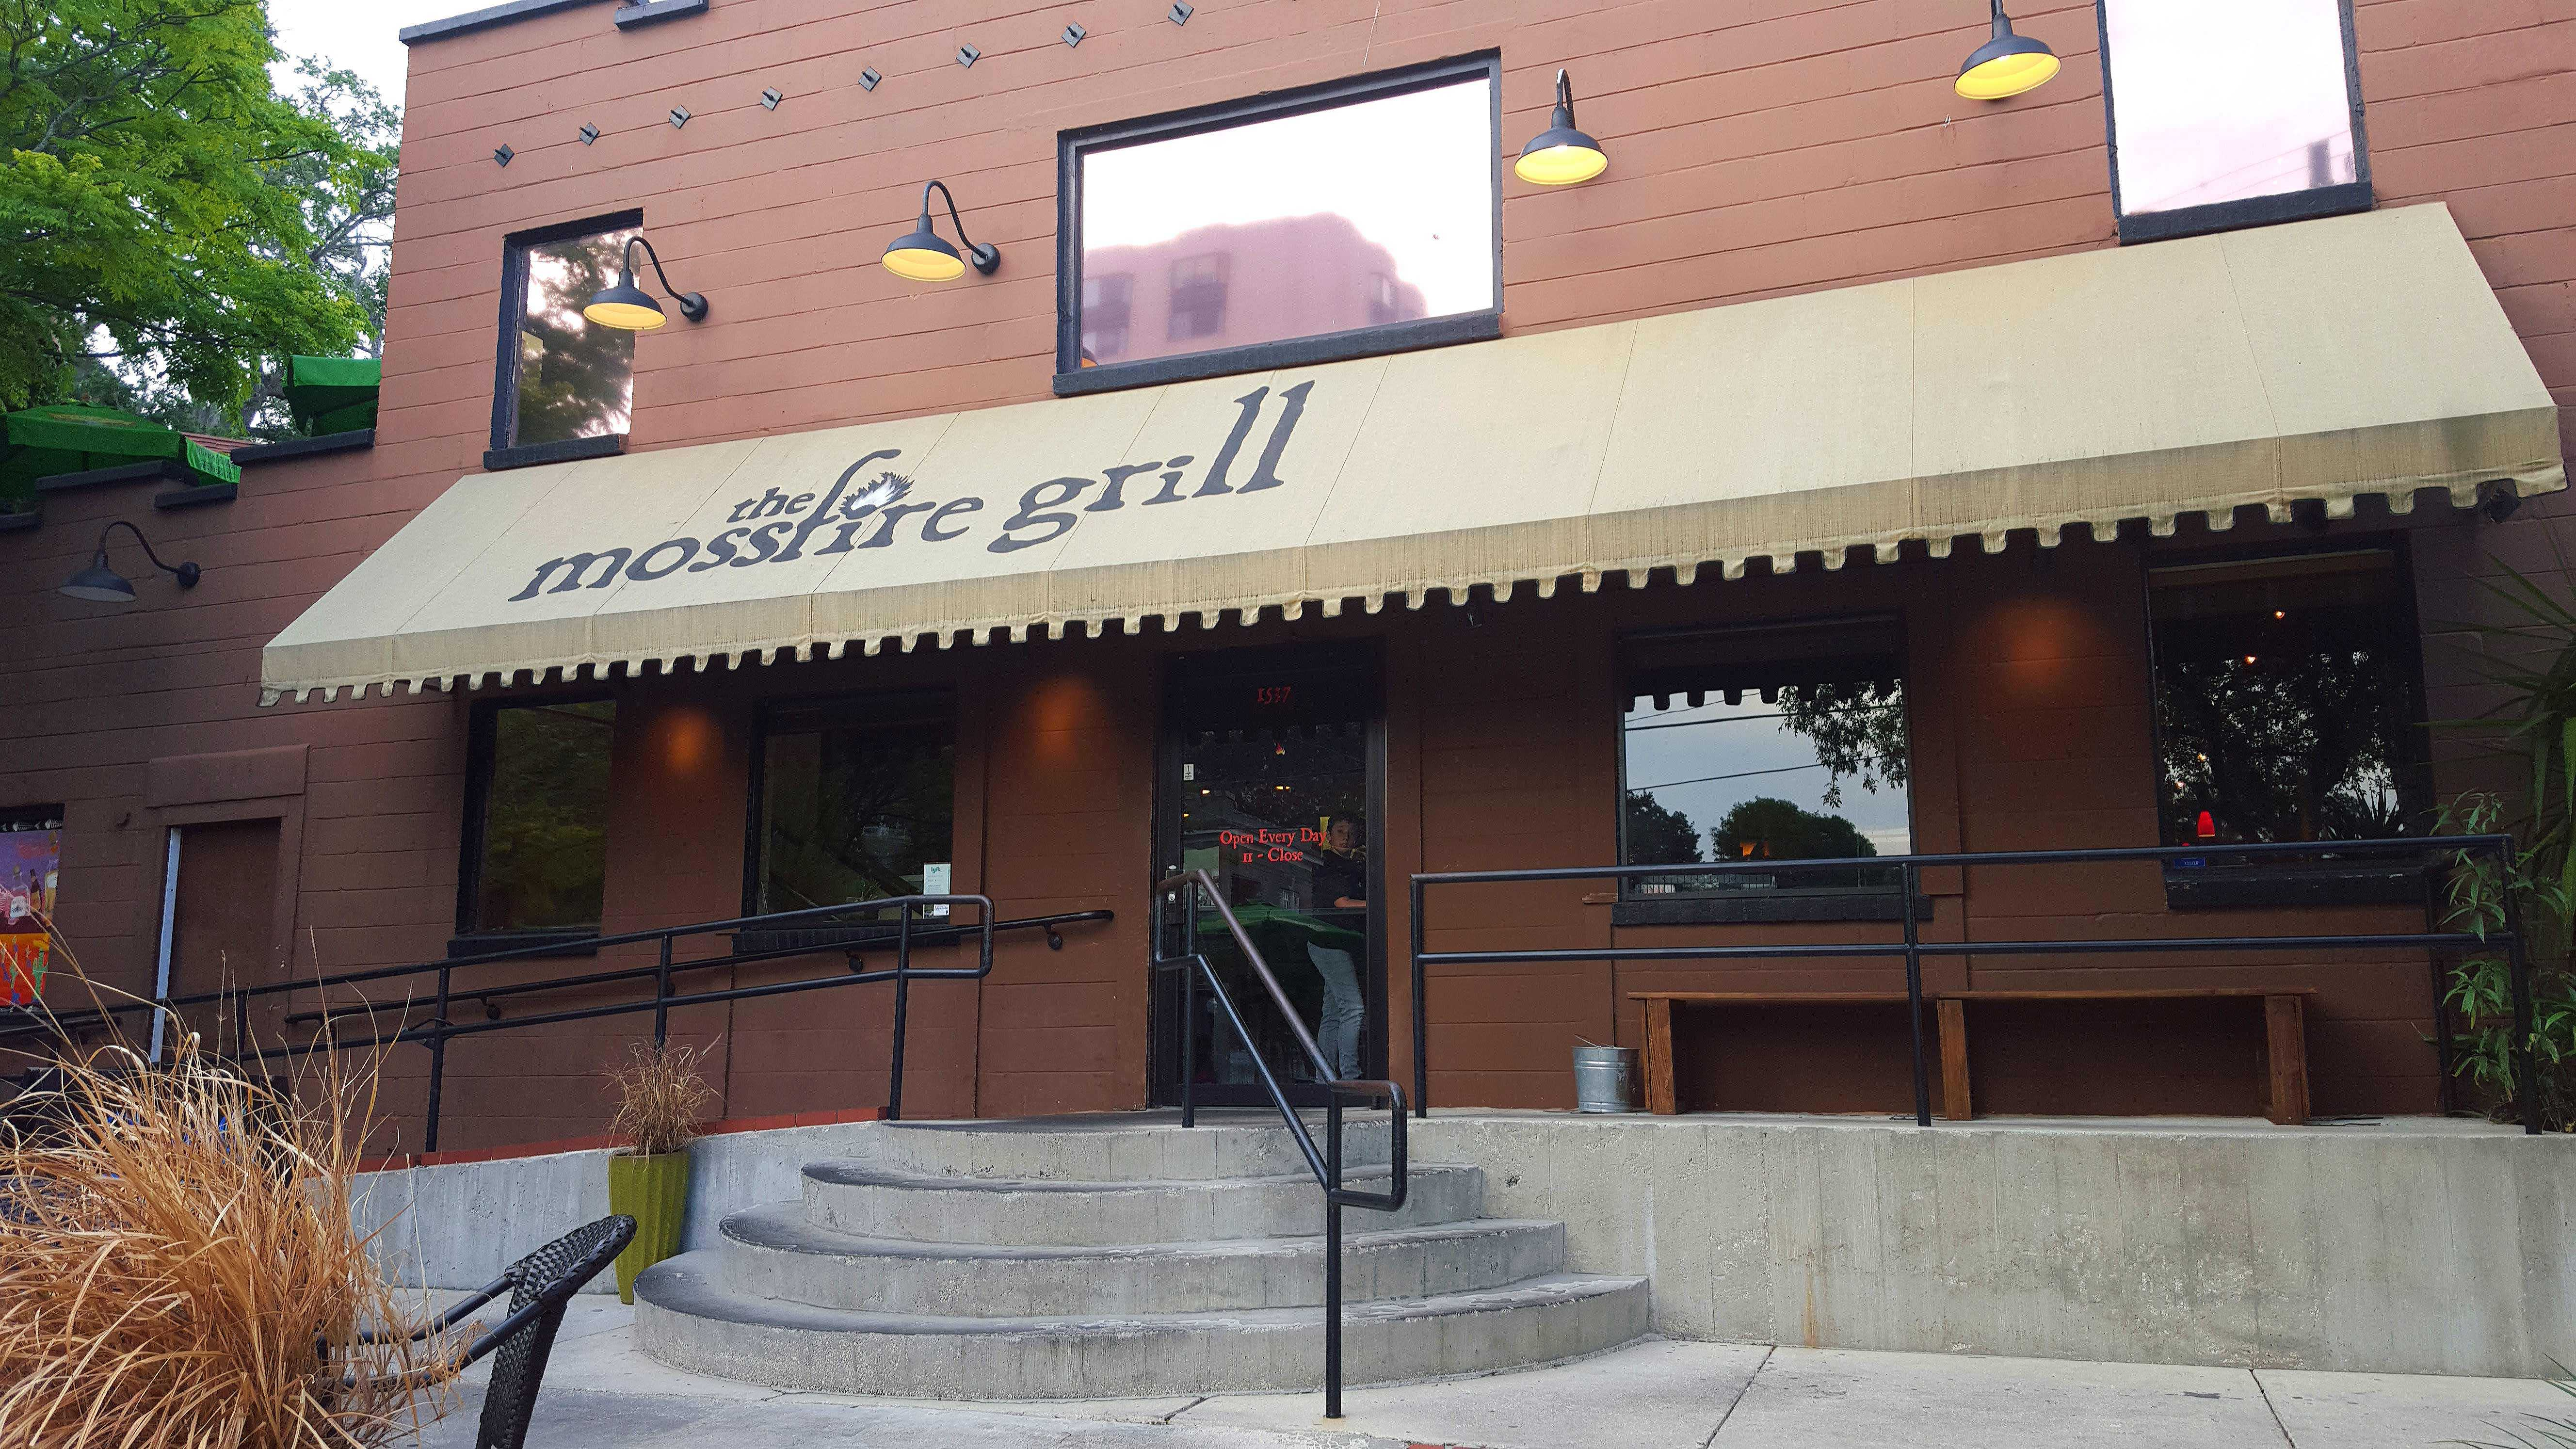 Local Eatery of the Week: The Mossfire Grill